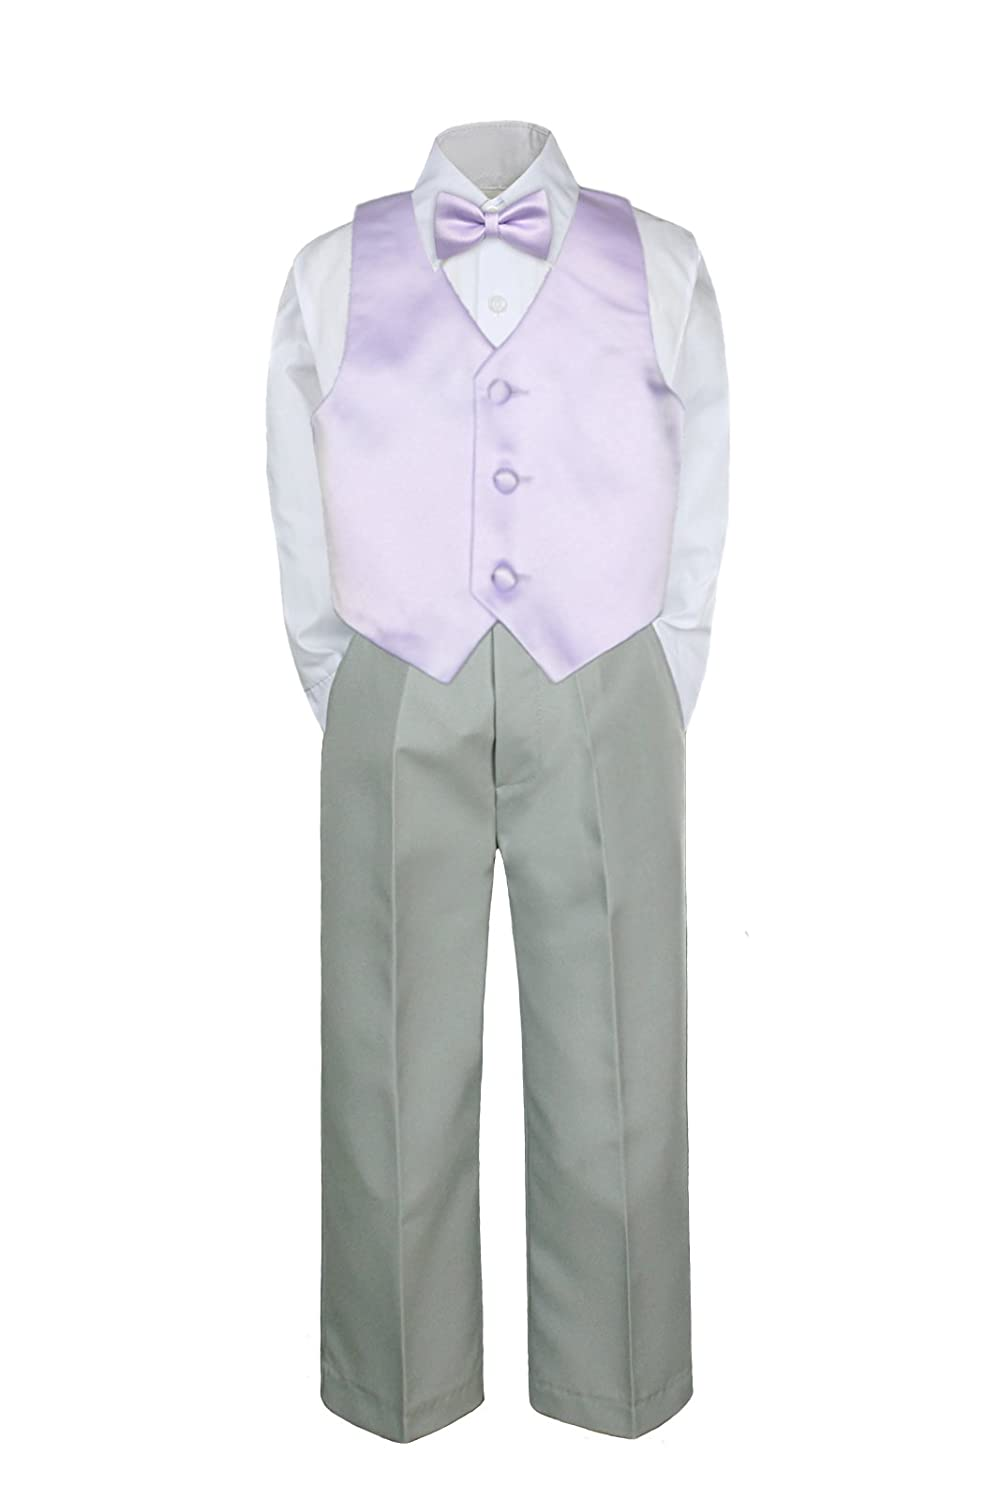 a47718f5f5a Amazon.com  4pc Formal Baby Toddler Boys Lilac Vest Bow Tie Silver Pants  Suits S-7 (S (0-6 months))  Baby